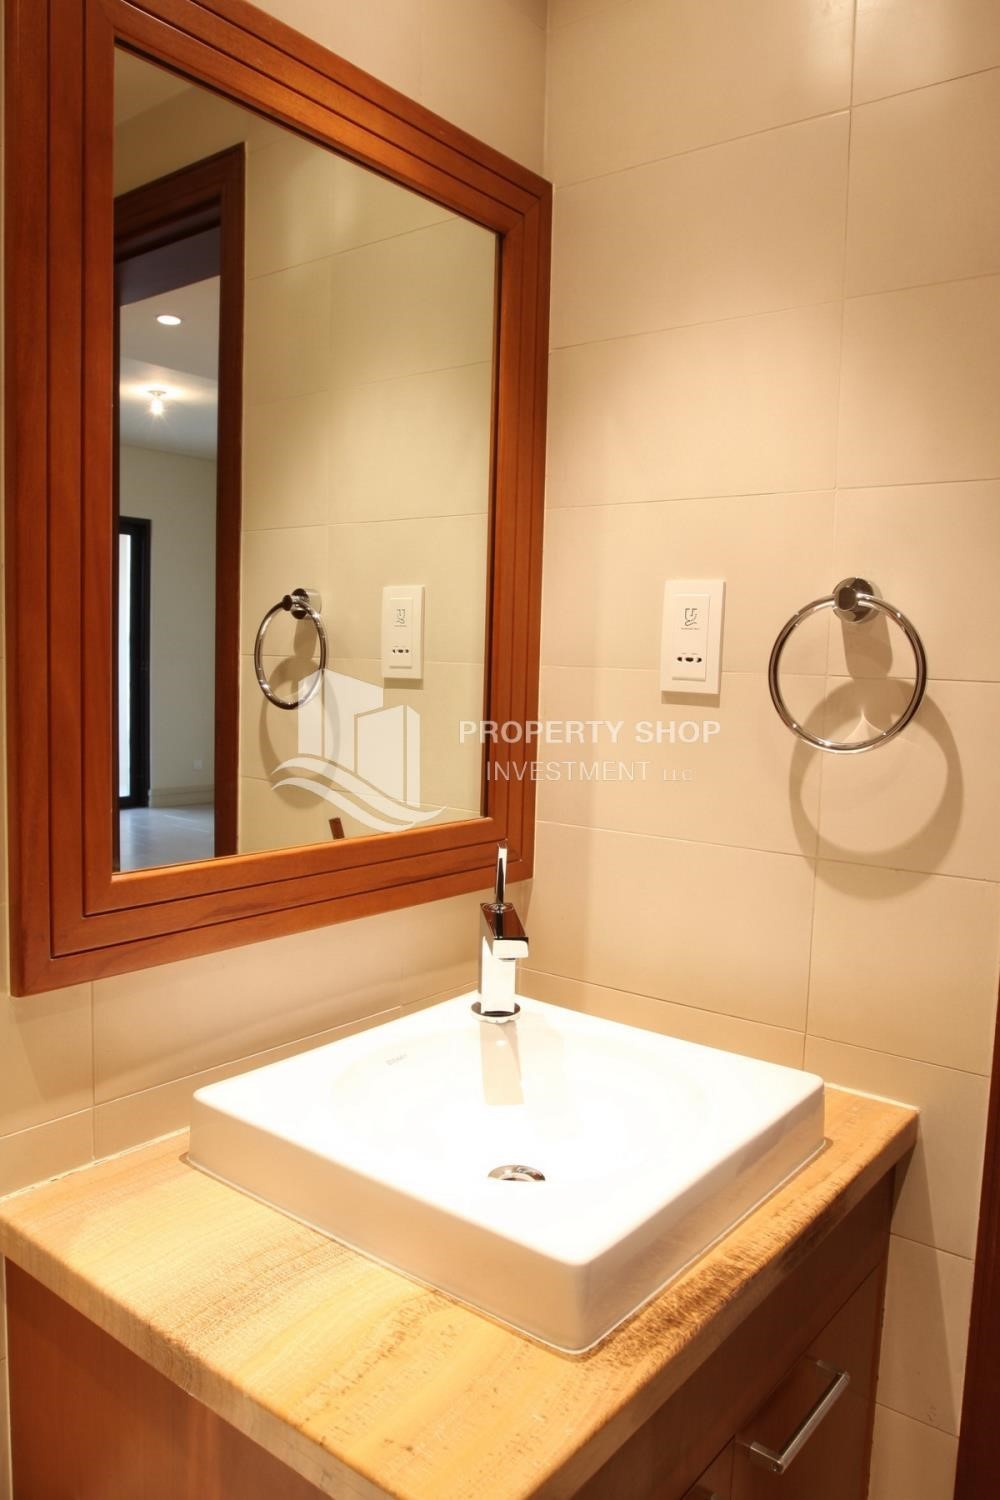 Bathroom - Low Priced! Medium Floor With Balcony- 4 Cheques